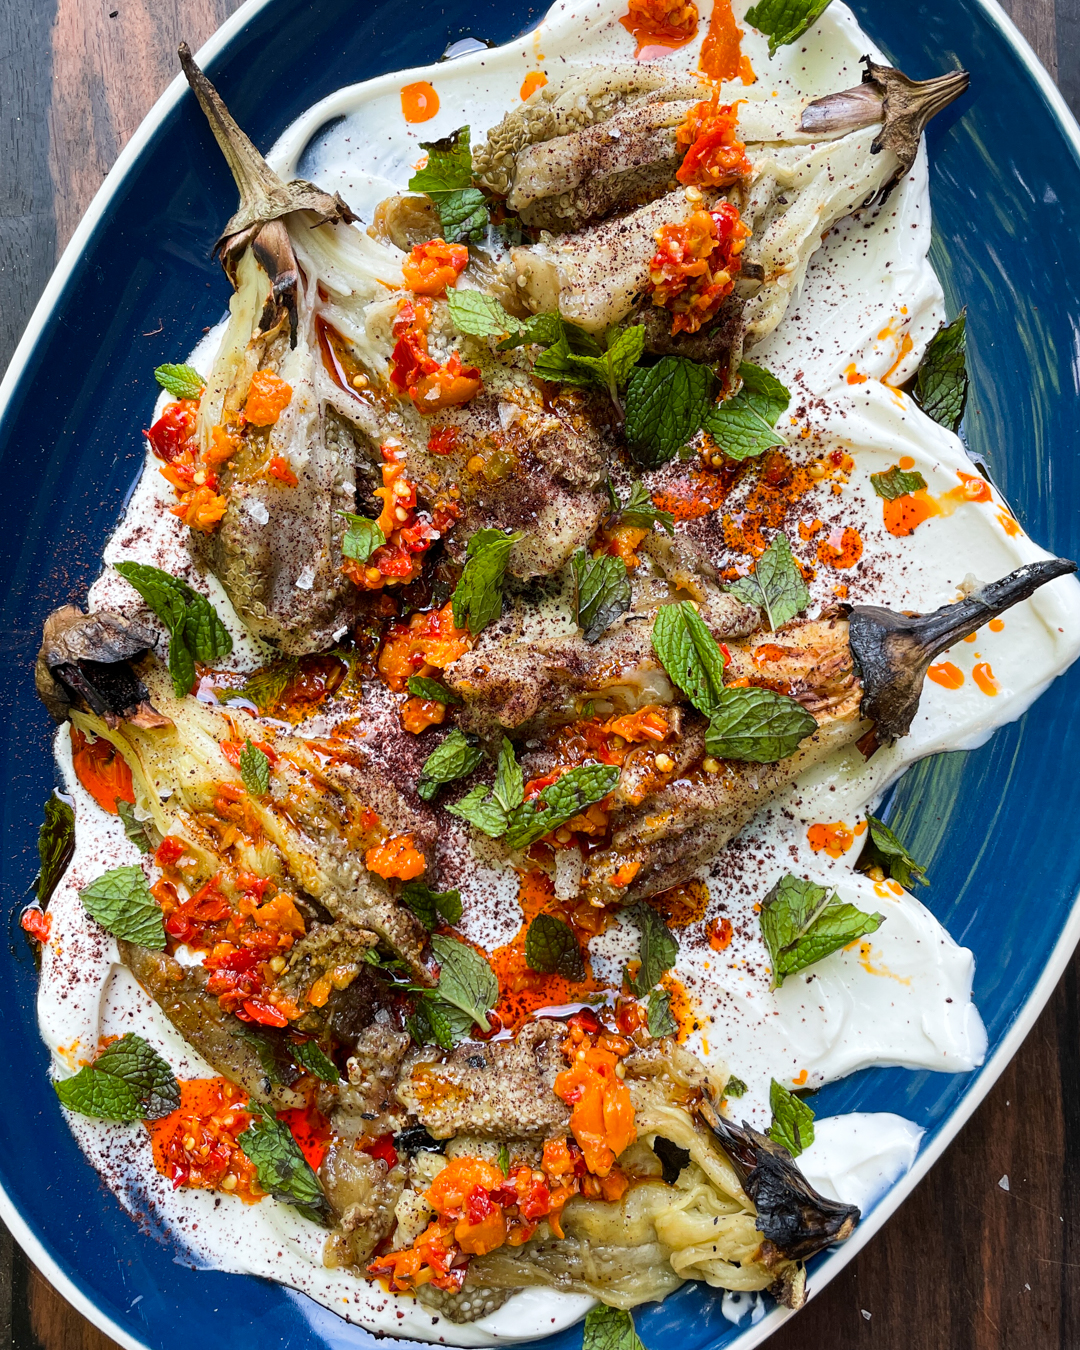 Grilled Eggplant with Whipped Feta, Sumac and Mint